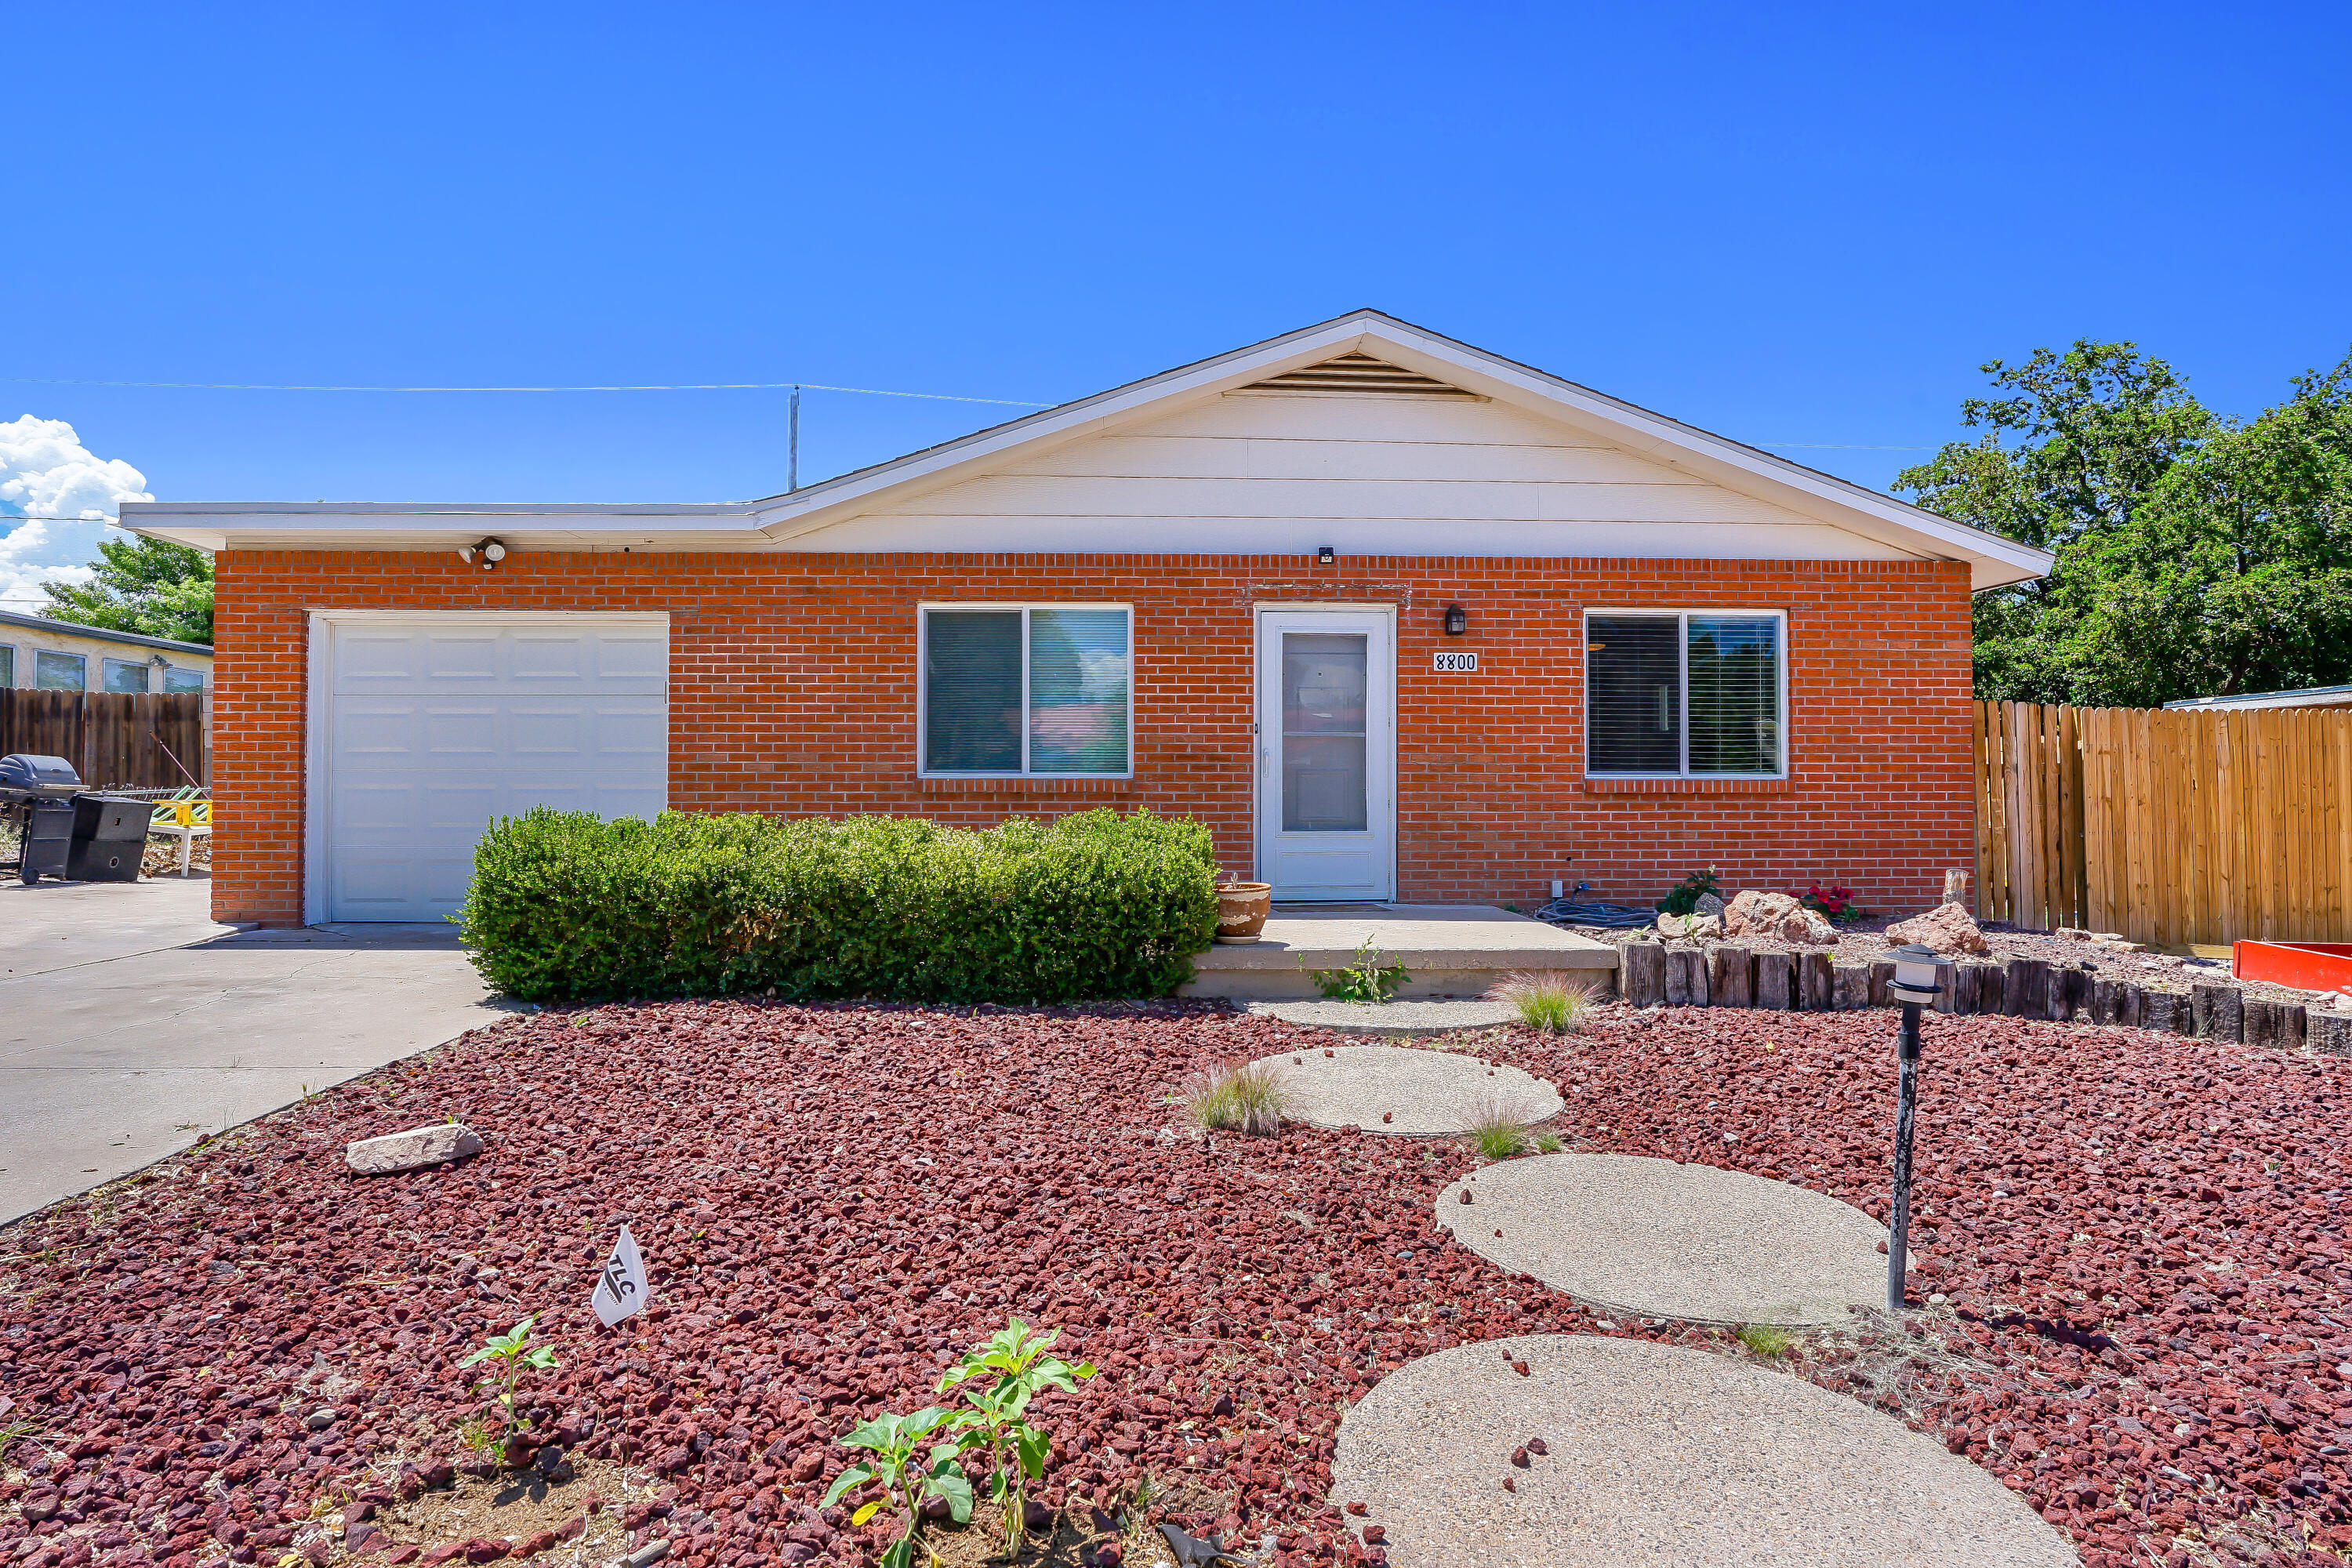 Back on the market!!  Come check out this cozy gem in the NE Heights. With a spacious, open floor plan. Lots of natural light throughout. Enjoy time in an enclosed sunroom or out under the pergola.New windows, newer roof and new stucco make this house move-in ready!